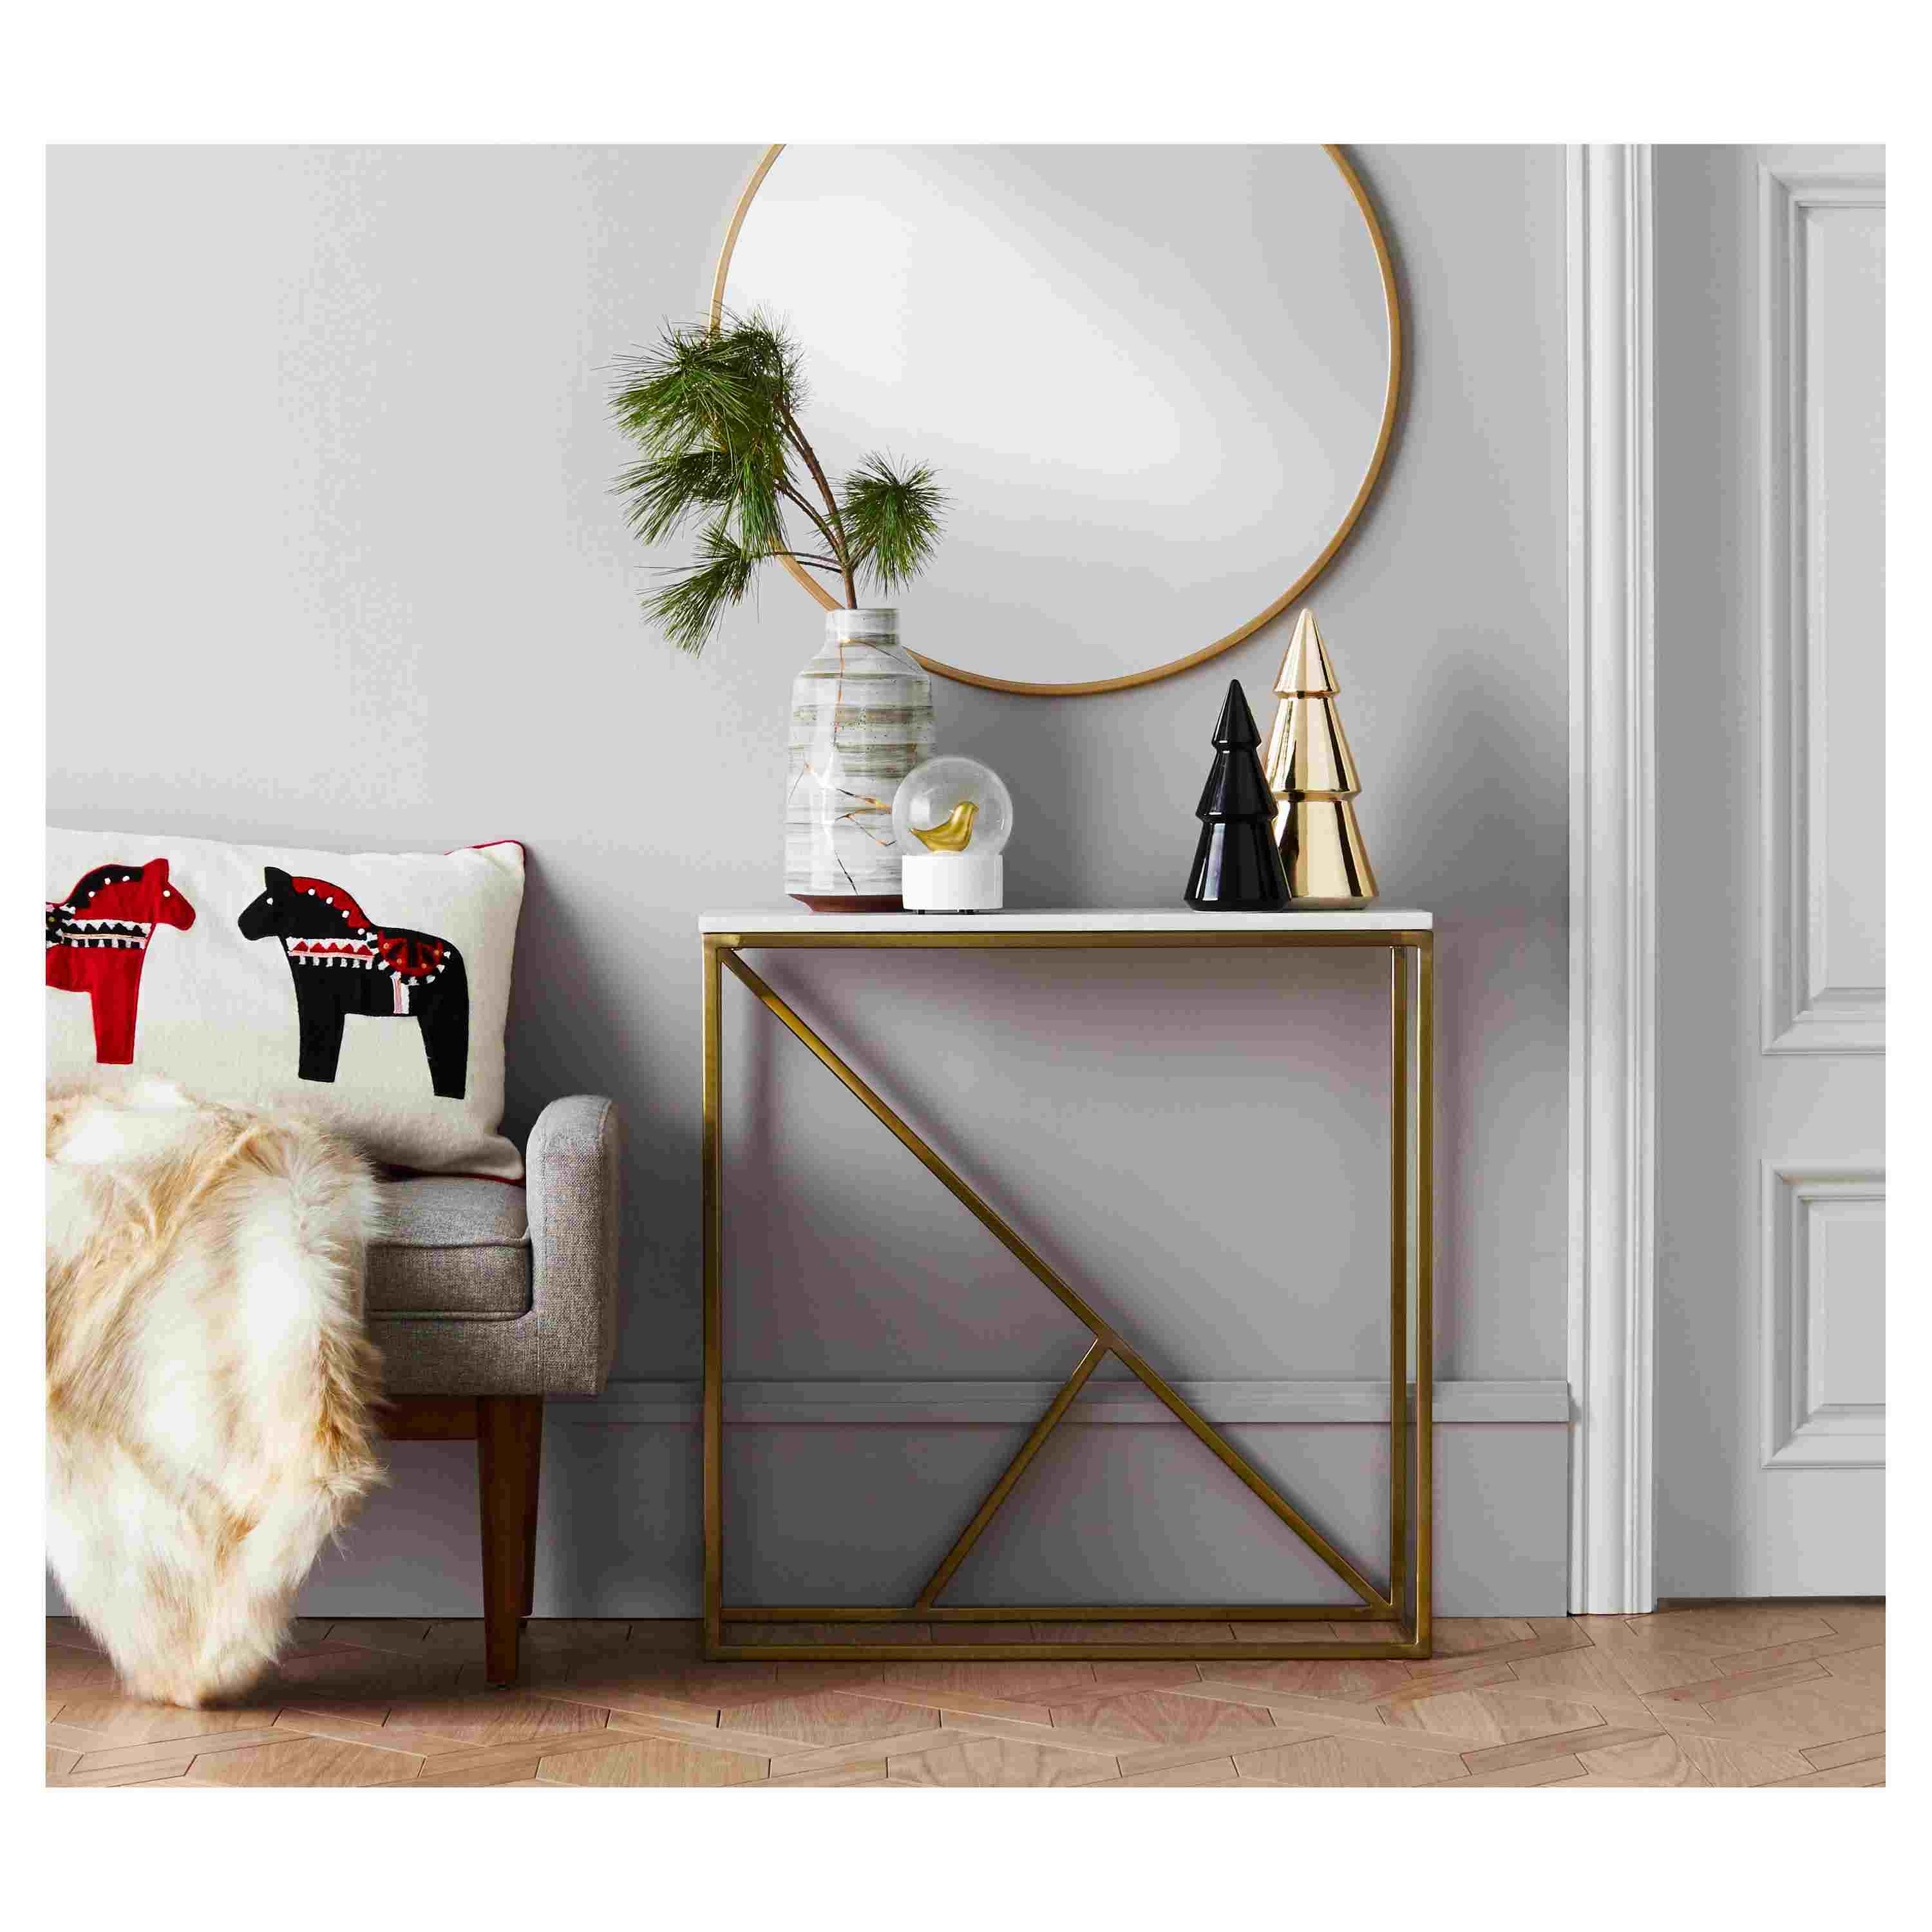 The 7 Best Wall Mirrors Of 2020